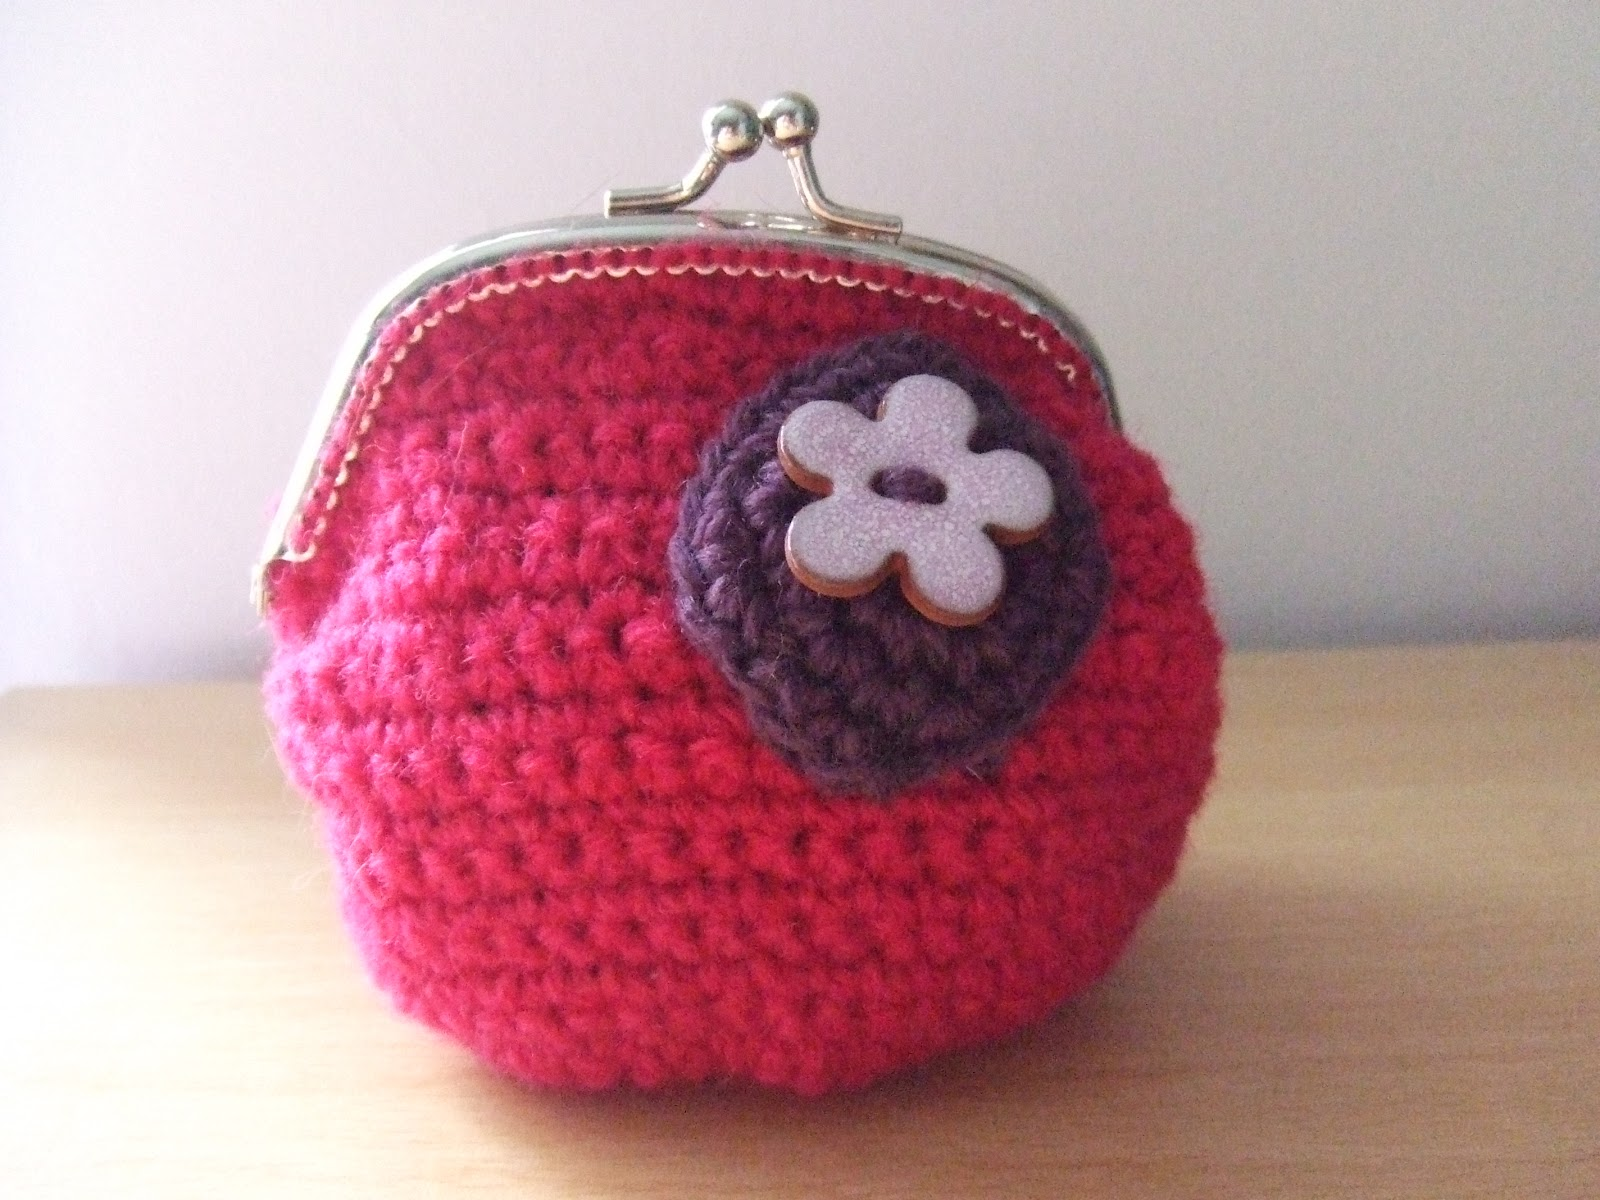 Crocheting Purses : Crafting With Mel: Cotton and Cloud Crochet Purse Kit